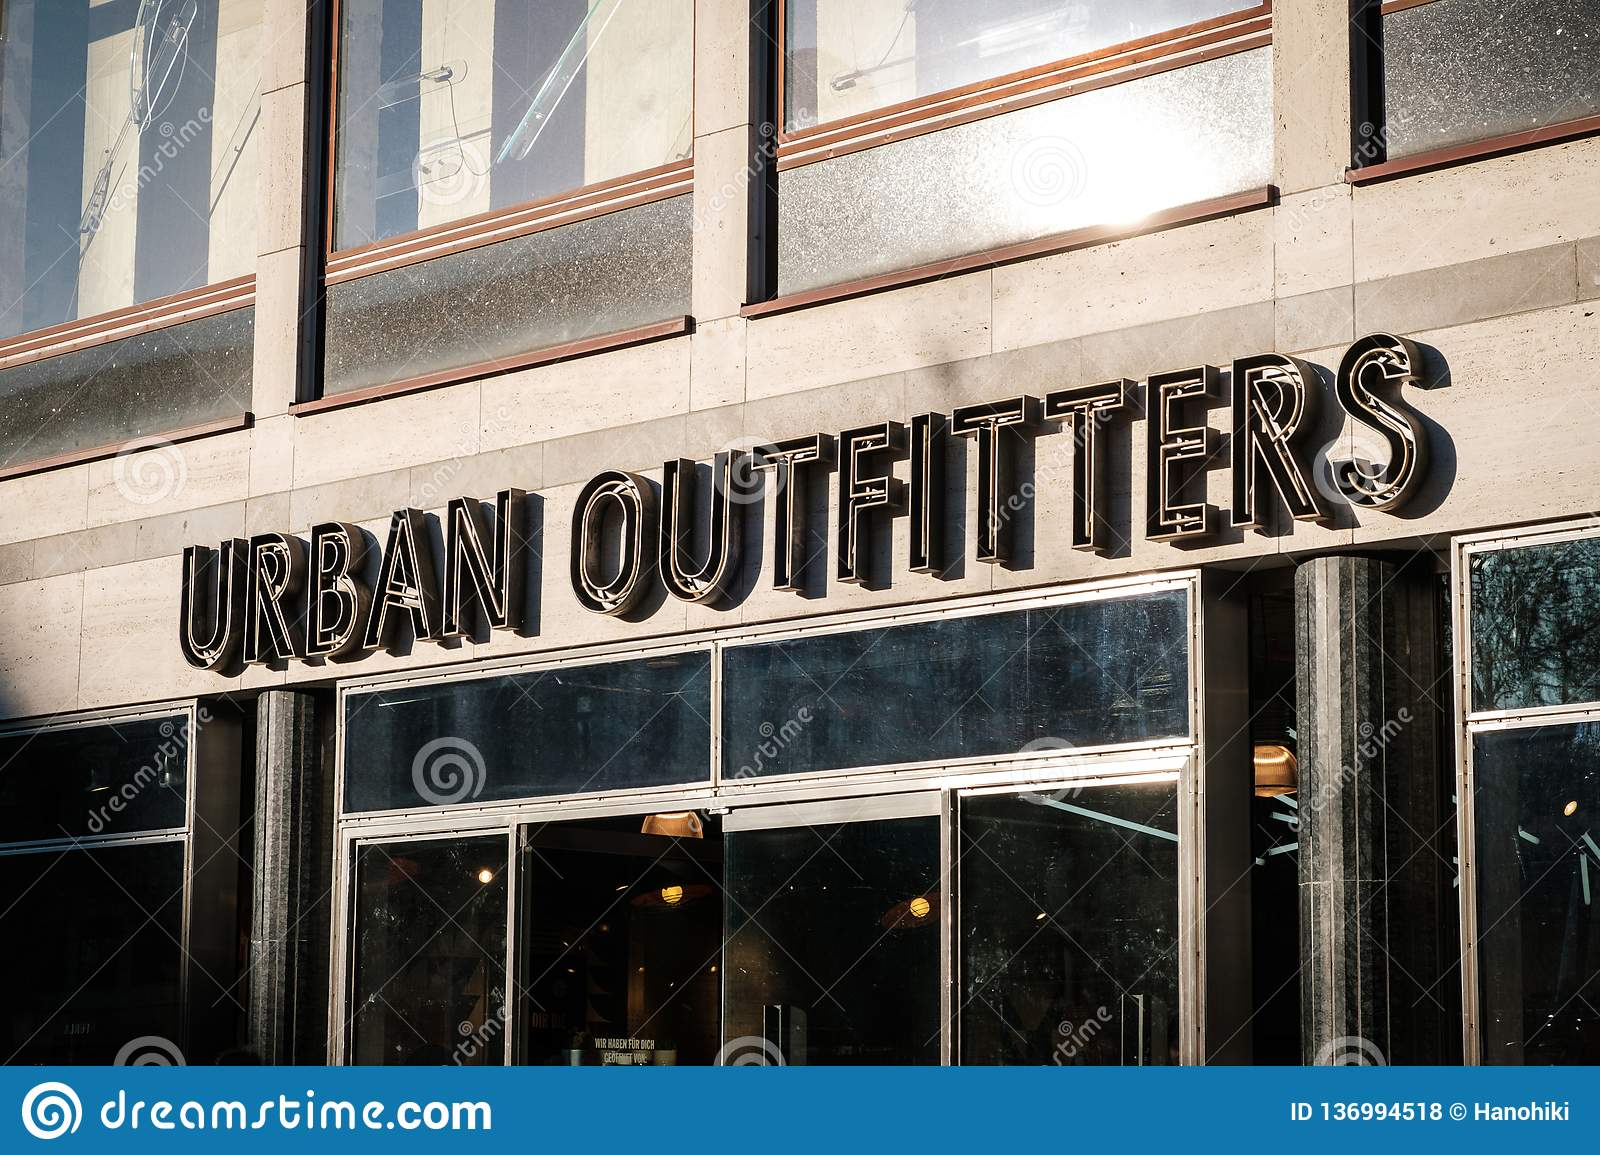 Urban Outfitters clothing store shop front in Berlin